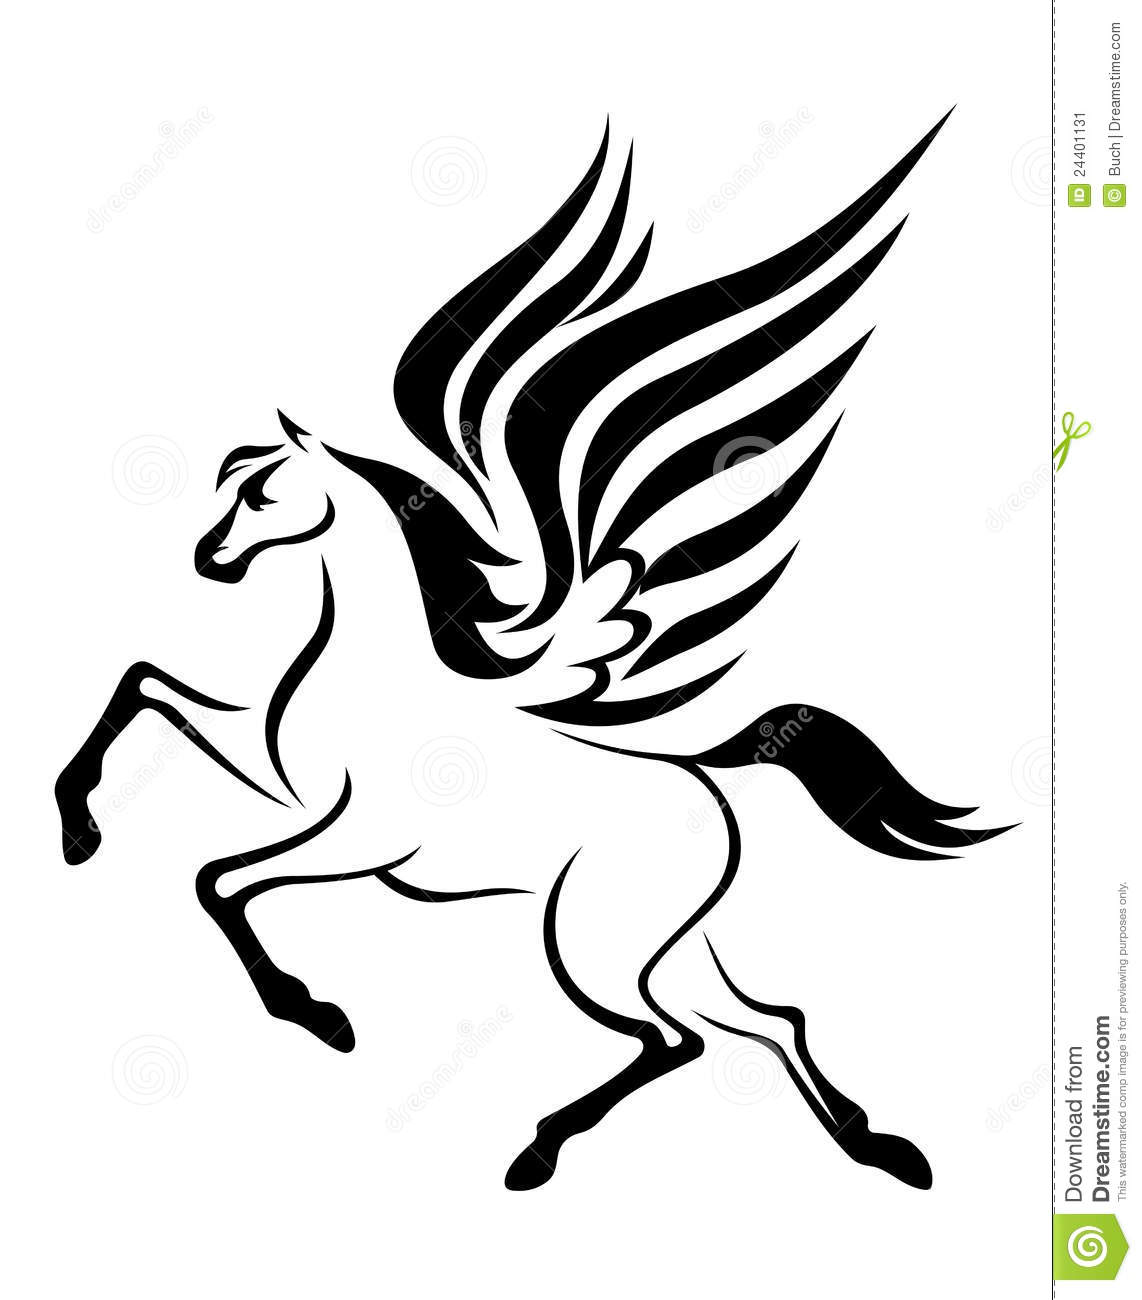 Pegasus Horse With Wings Stock Image - Image: 24401131